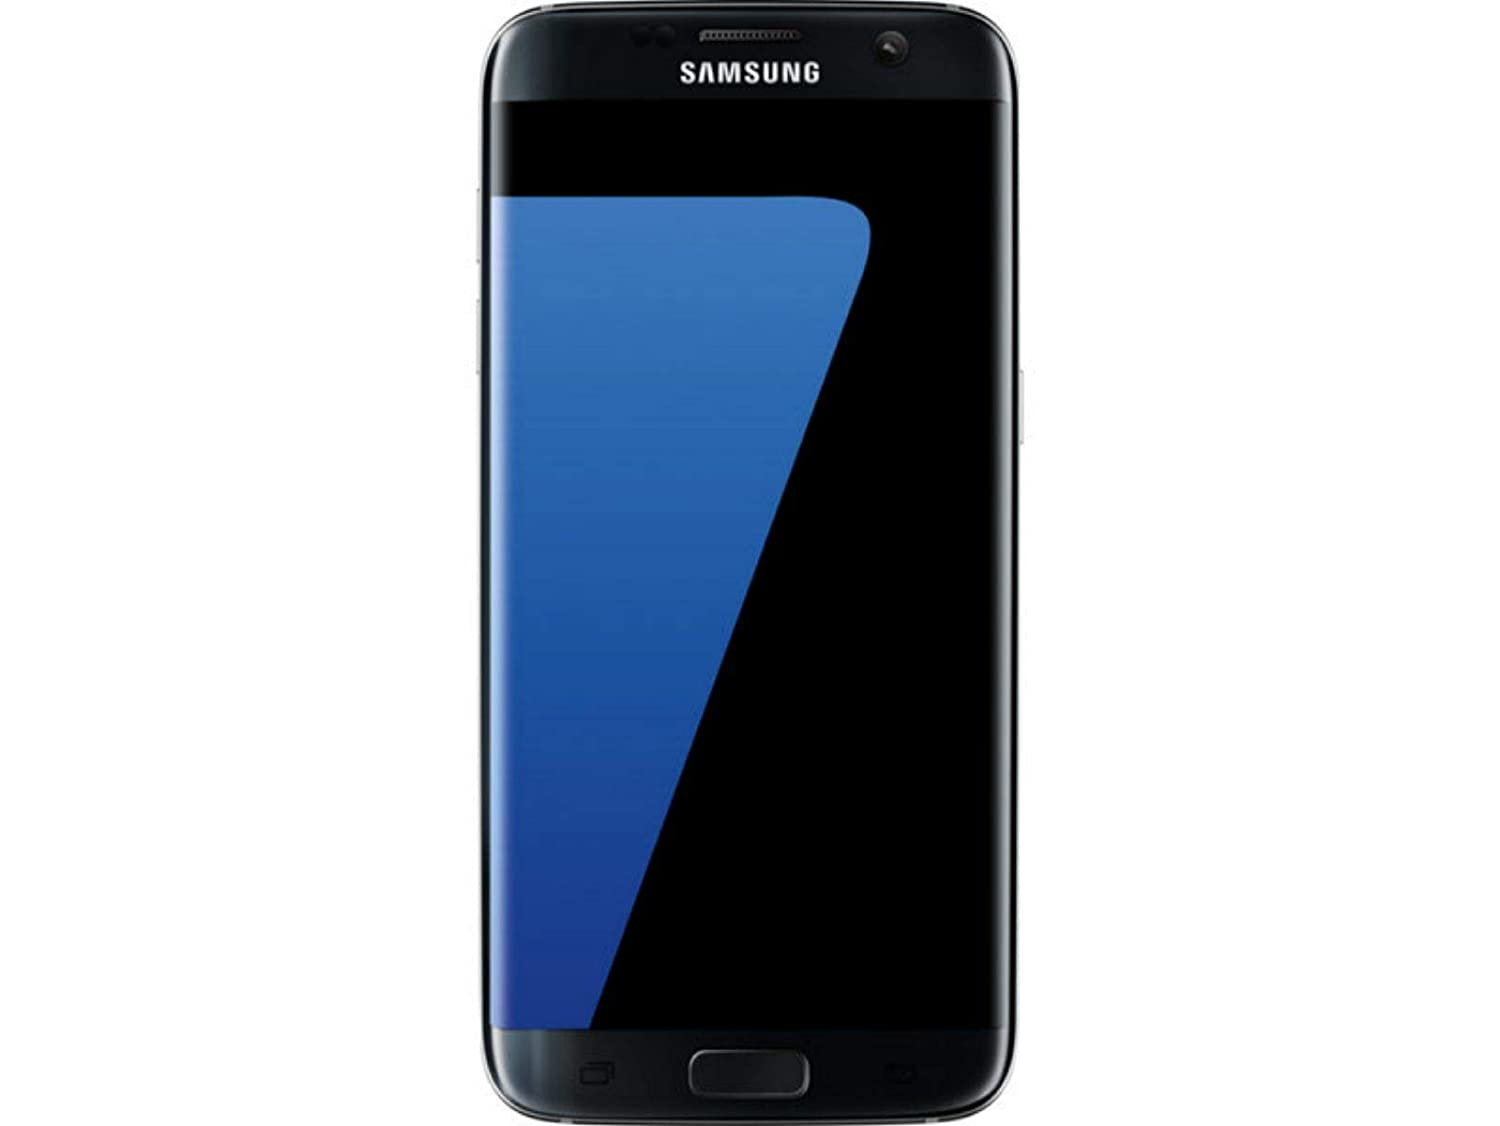 Samsung Galaxy S7 Edge G935A 32Gb - BerkshireRegion